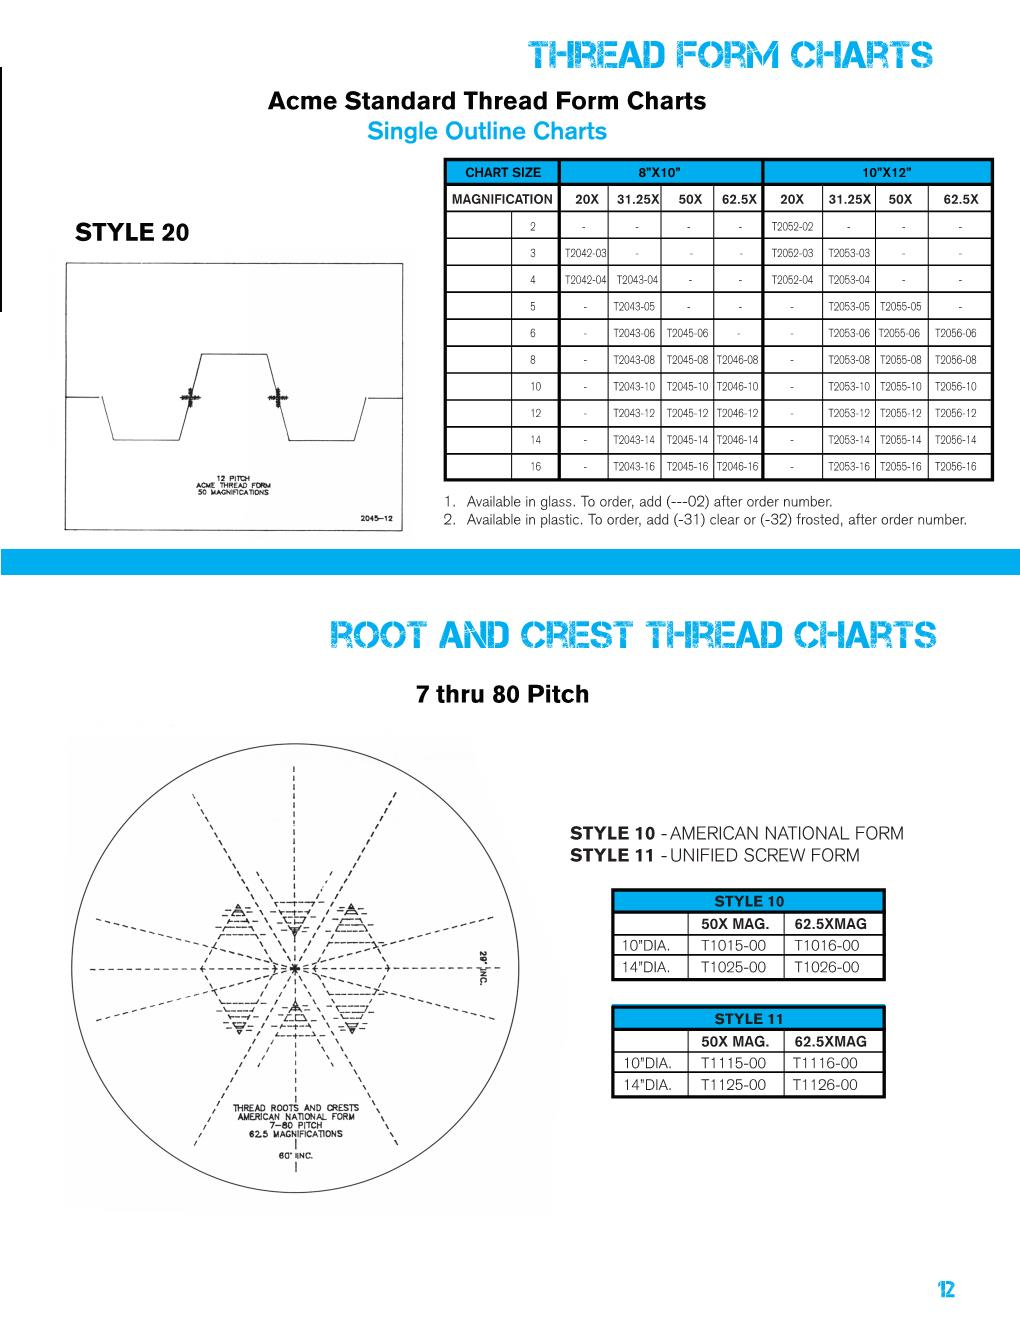 Unlimited Services Chart & Fixture Catalog 12.2018 FINAL Page 013.jpg